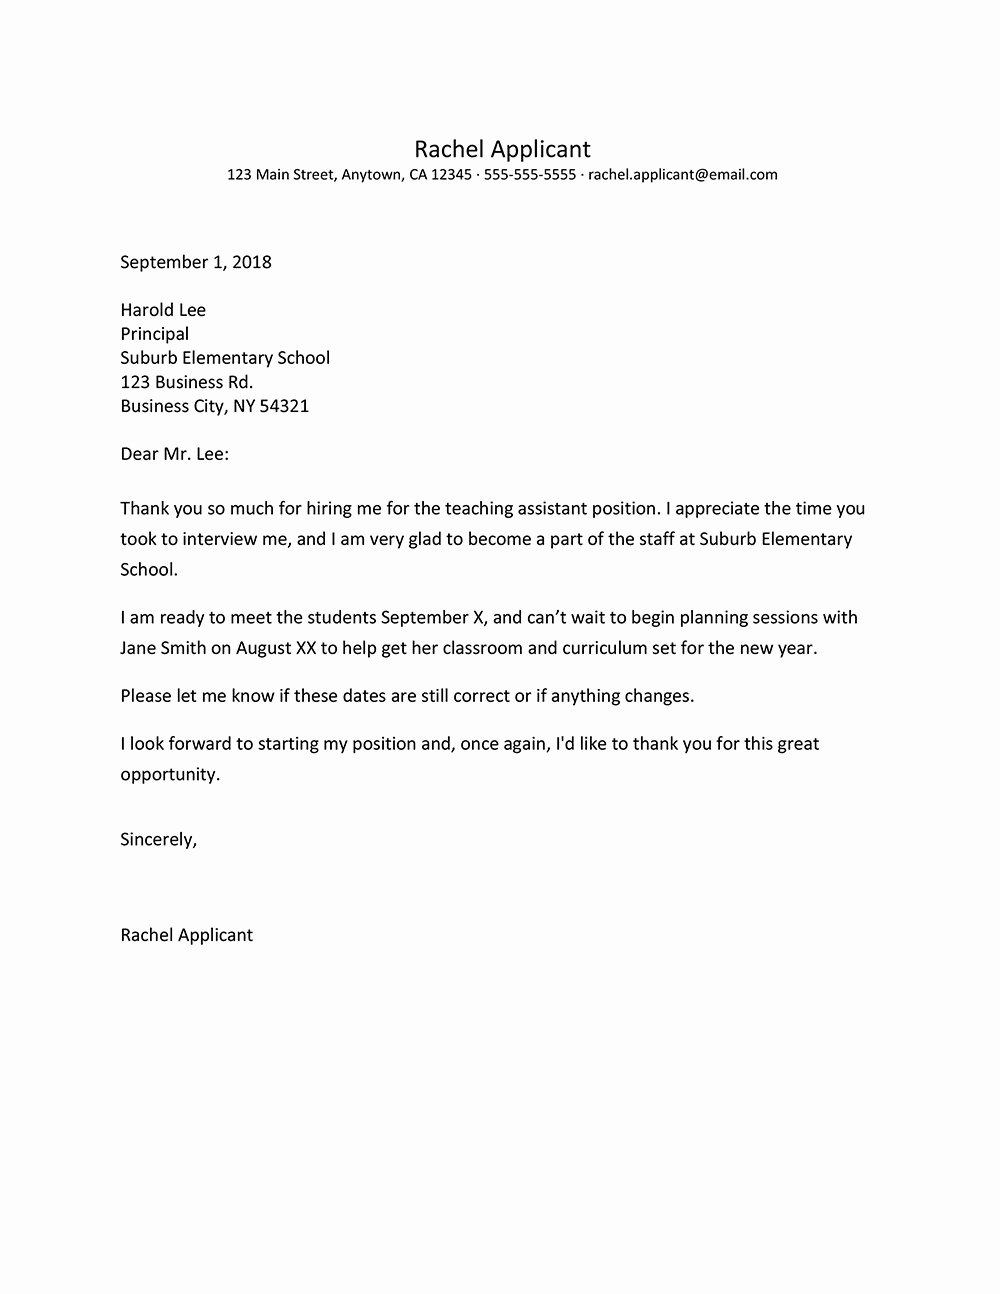 Job Offer Thank You Letter Beautiful Screenshot Of A Job Offer Thank You Letter Example